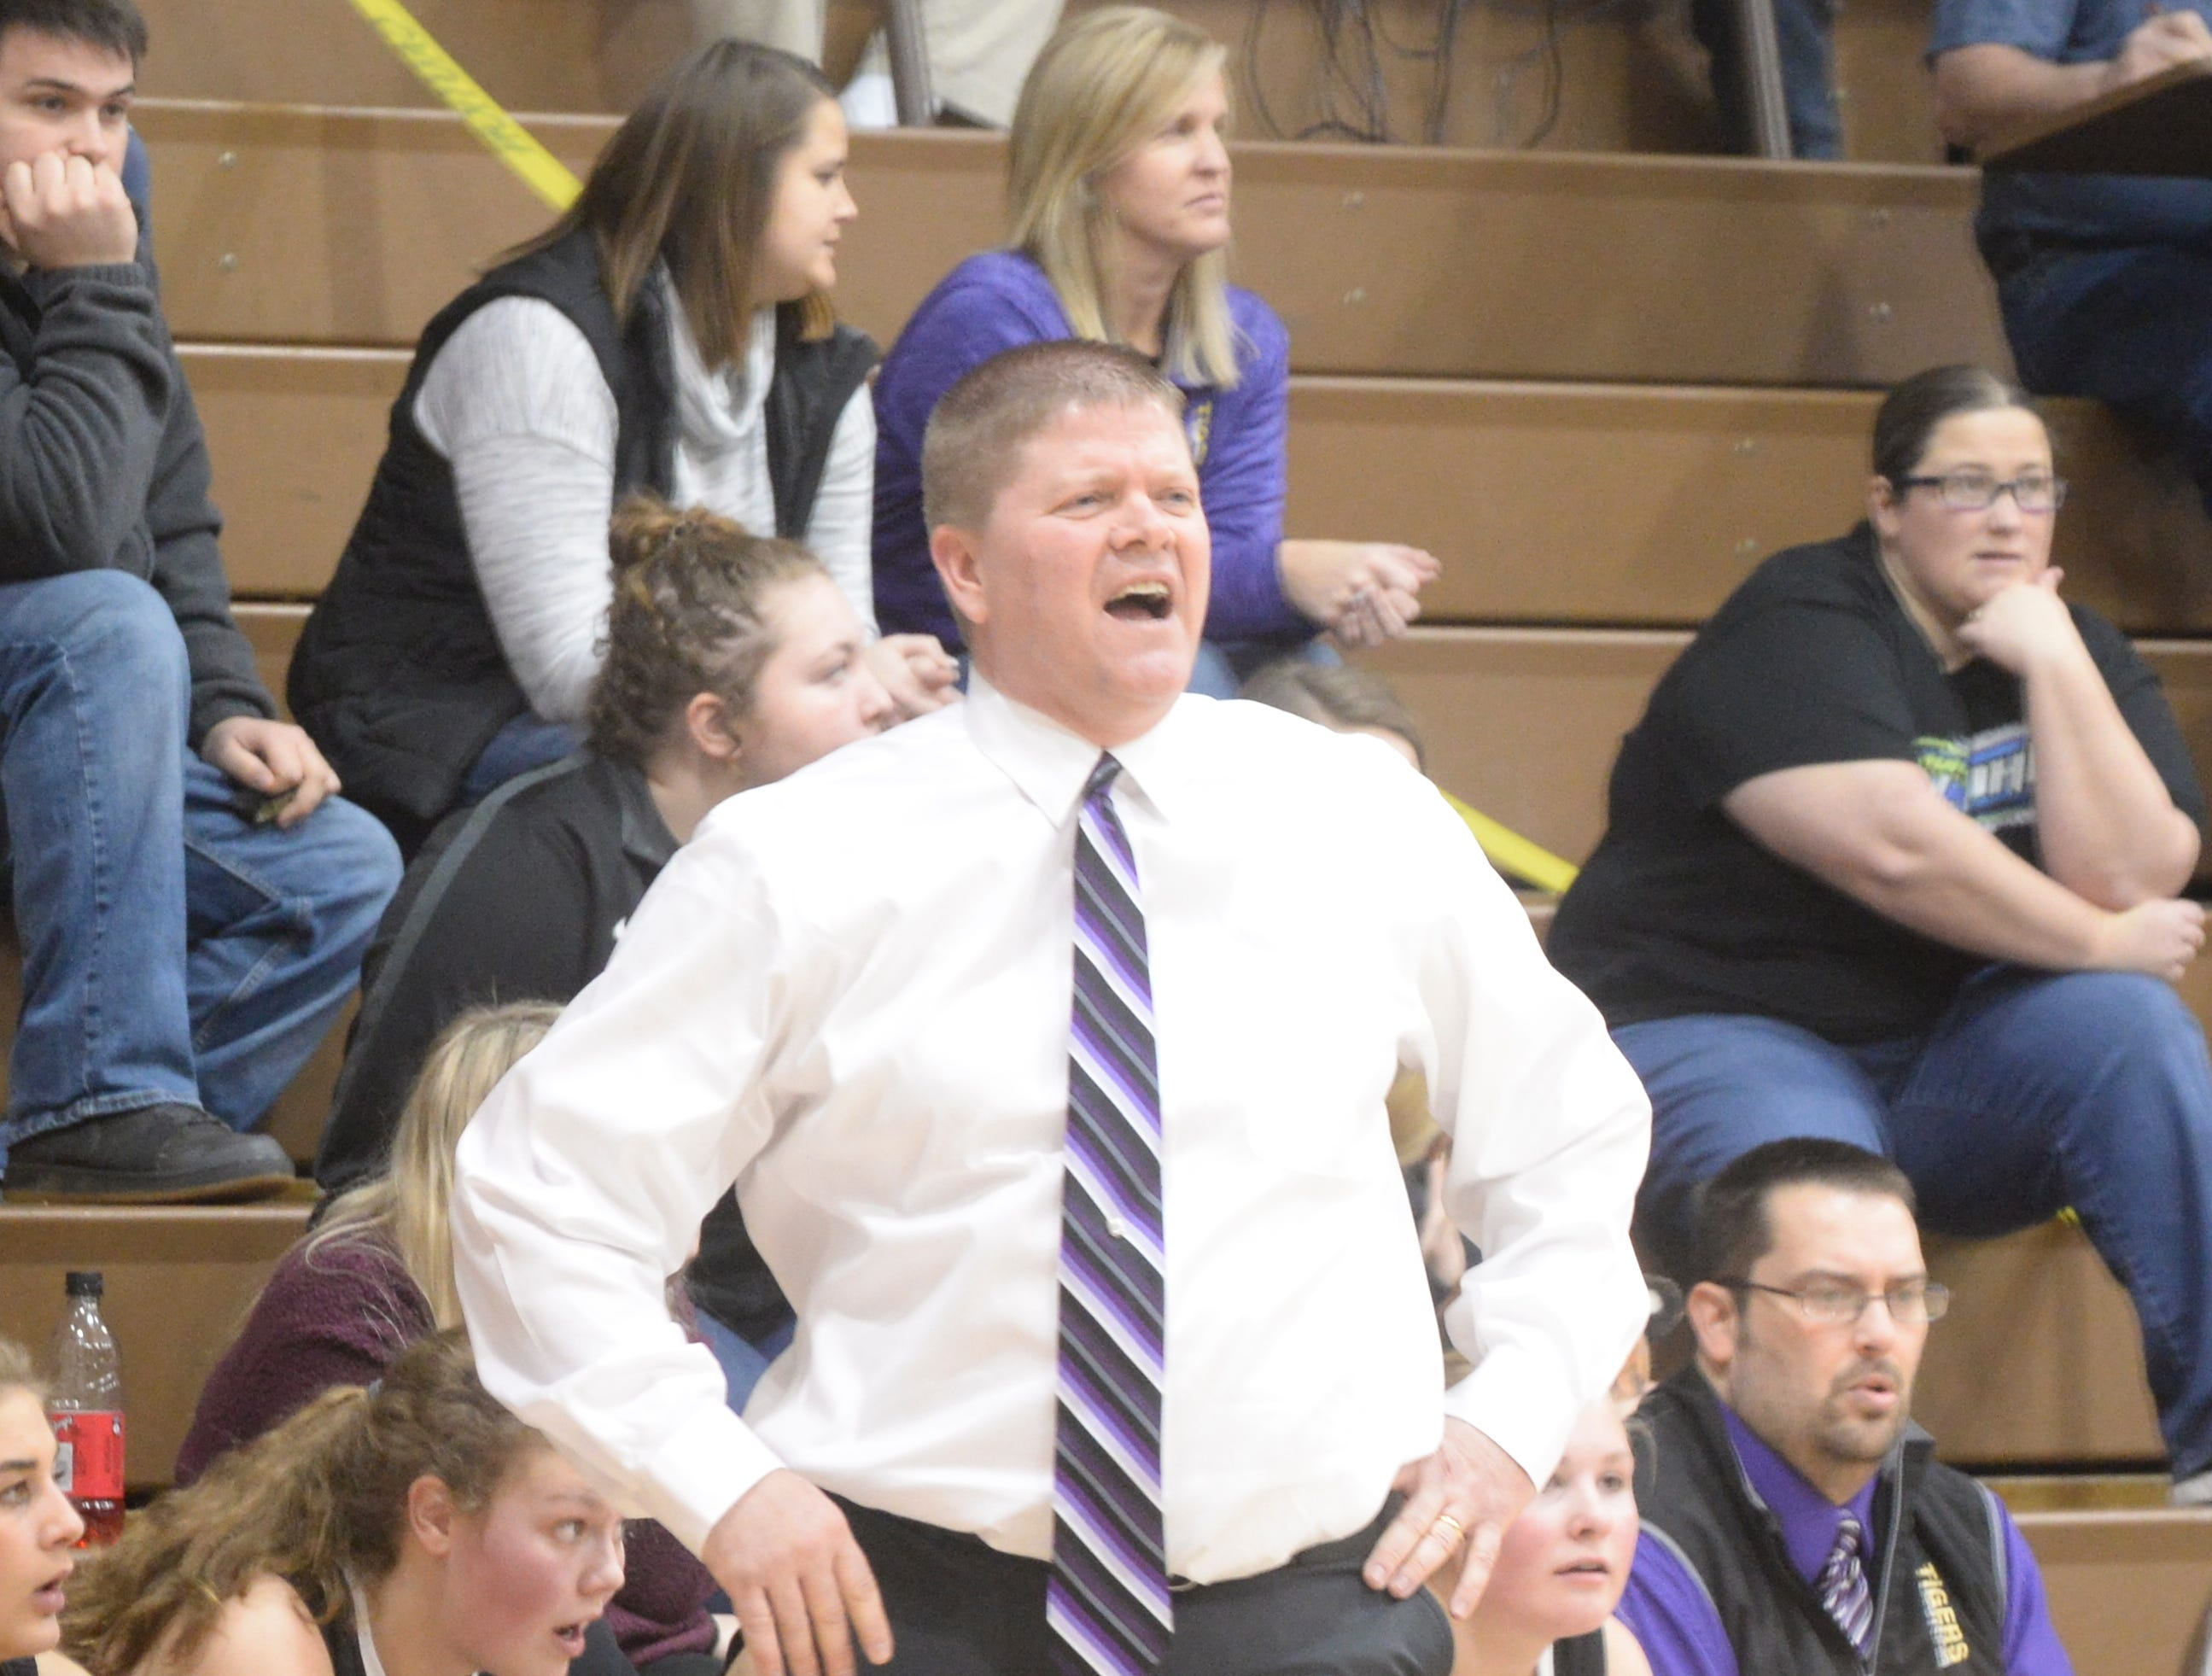 Hagerstown girls basketball coach Chris Oliger during the Wayne County girls basketball championship at Hagerstown Saturday, Jan. 5, 2019. Hagerstown defeated Northeastern 37-35 to win the girls' title, and Northeastern beat Hagerstown 60-49 in the boys championship.